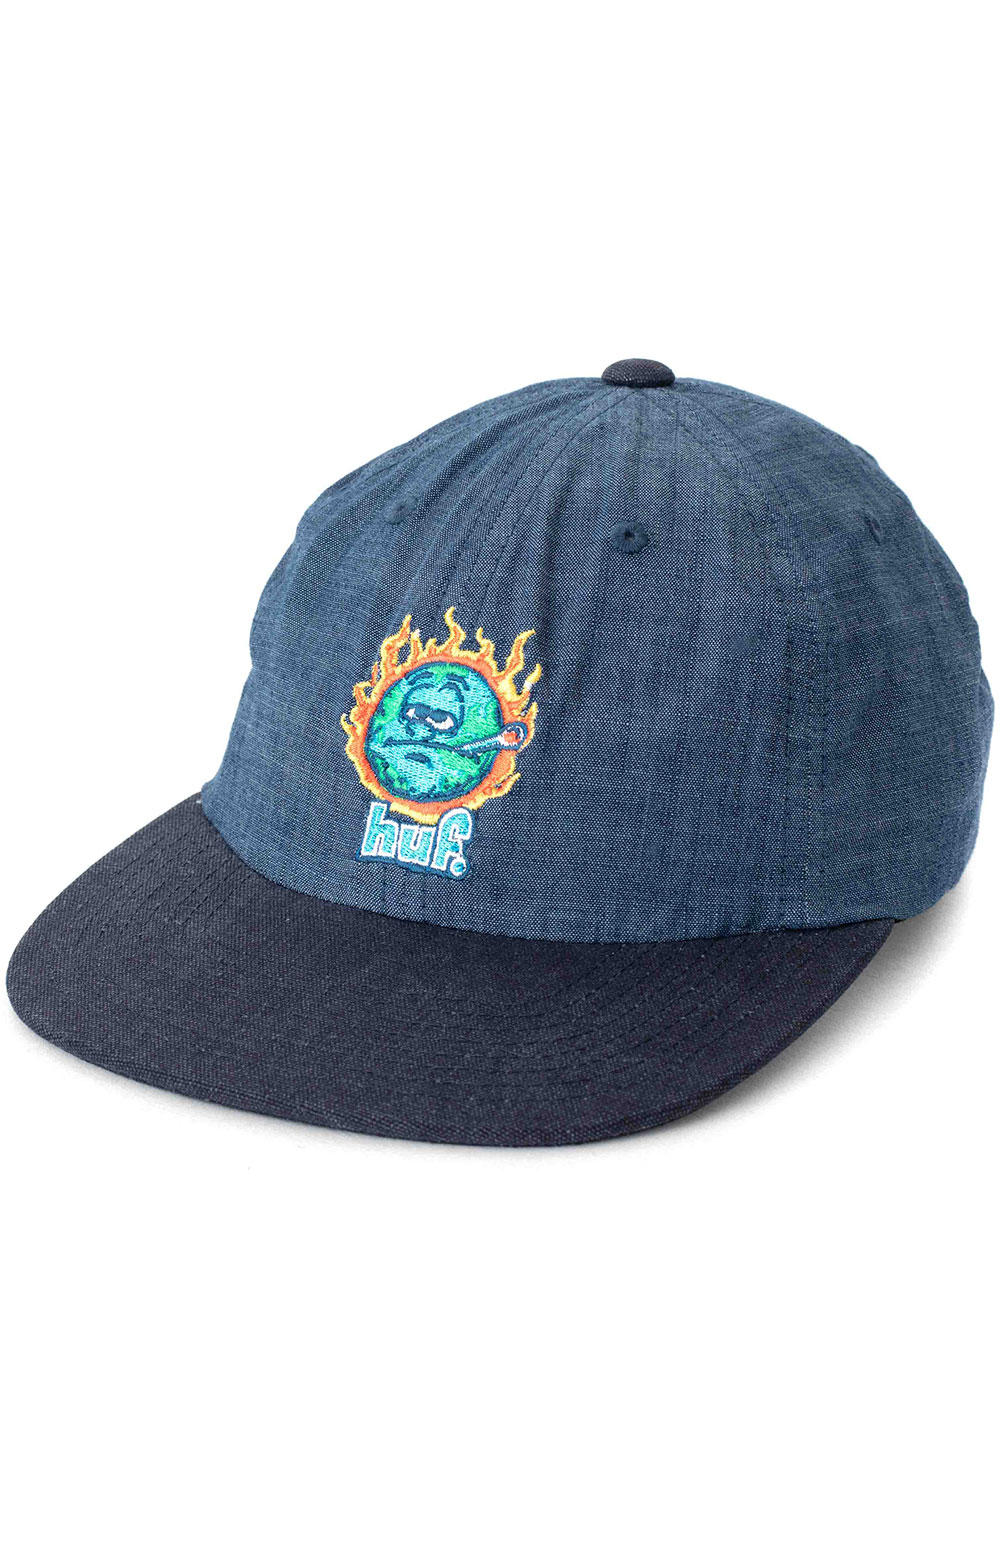 Global Warming 6 Panel Hat - Blue Chambray